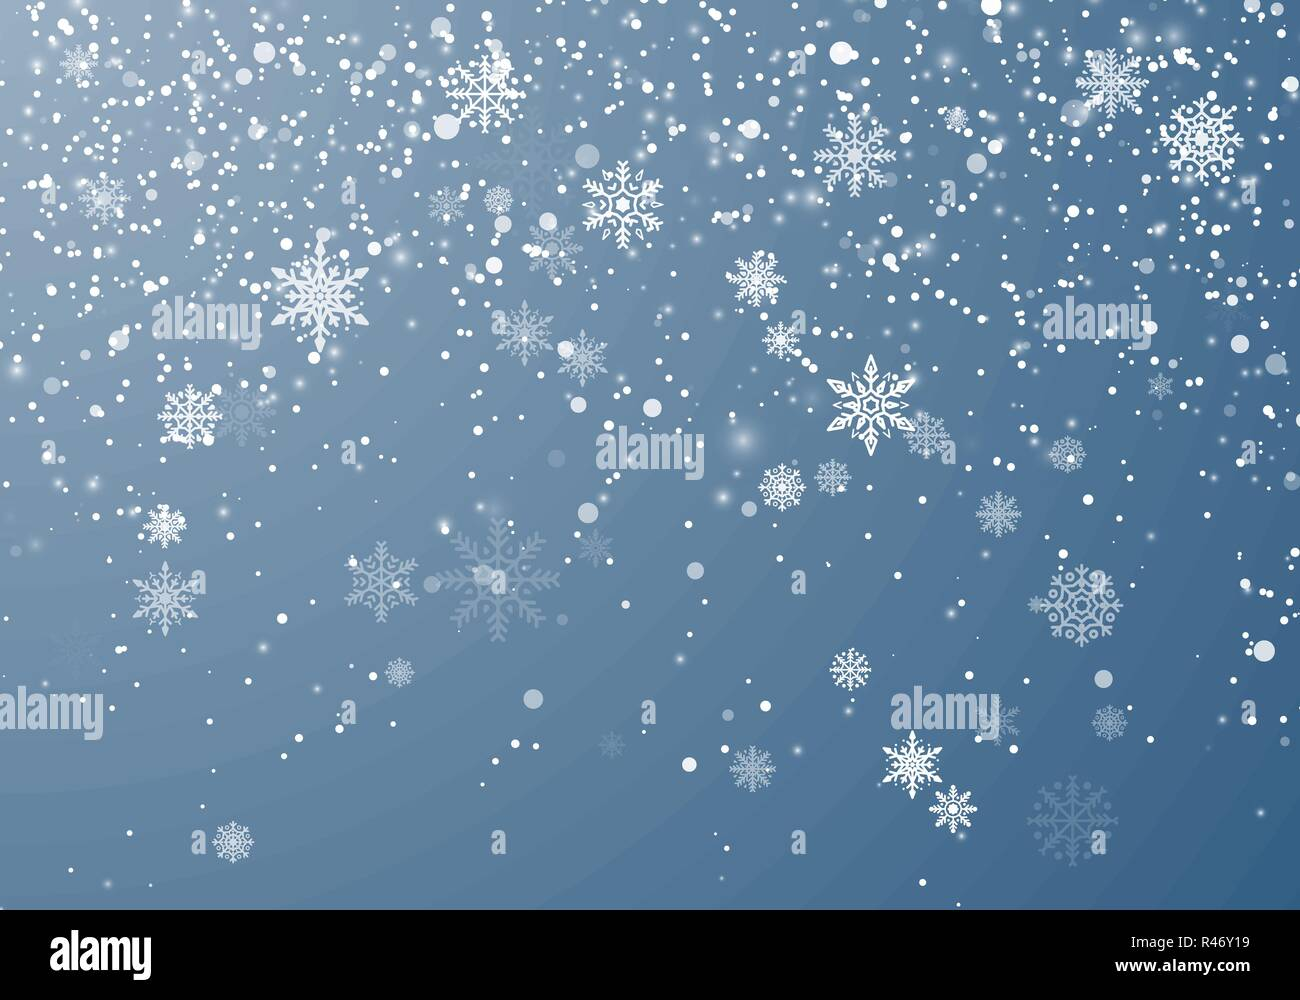 Snowfall Christmas background. Flying snow flakes and stars on winter sky background. Winter wite snowflake overlay template. Vector illustration - Stock Image